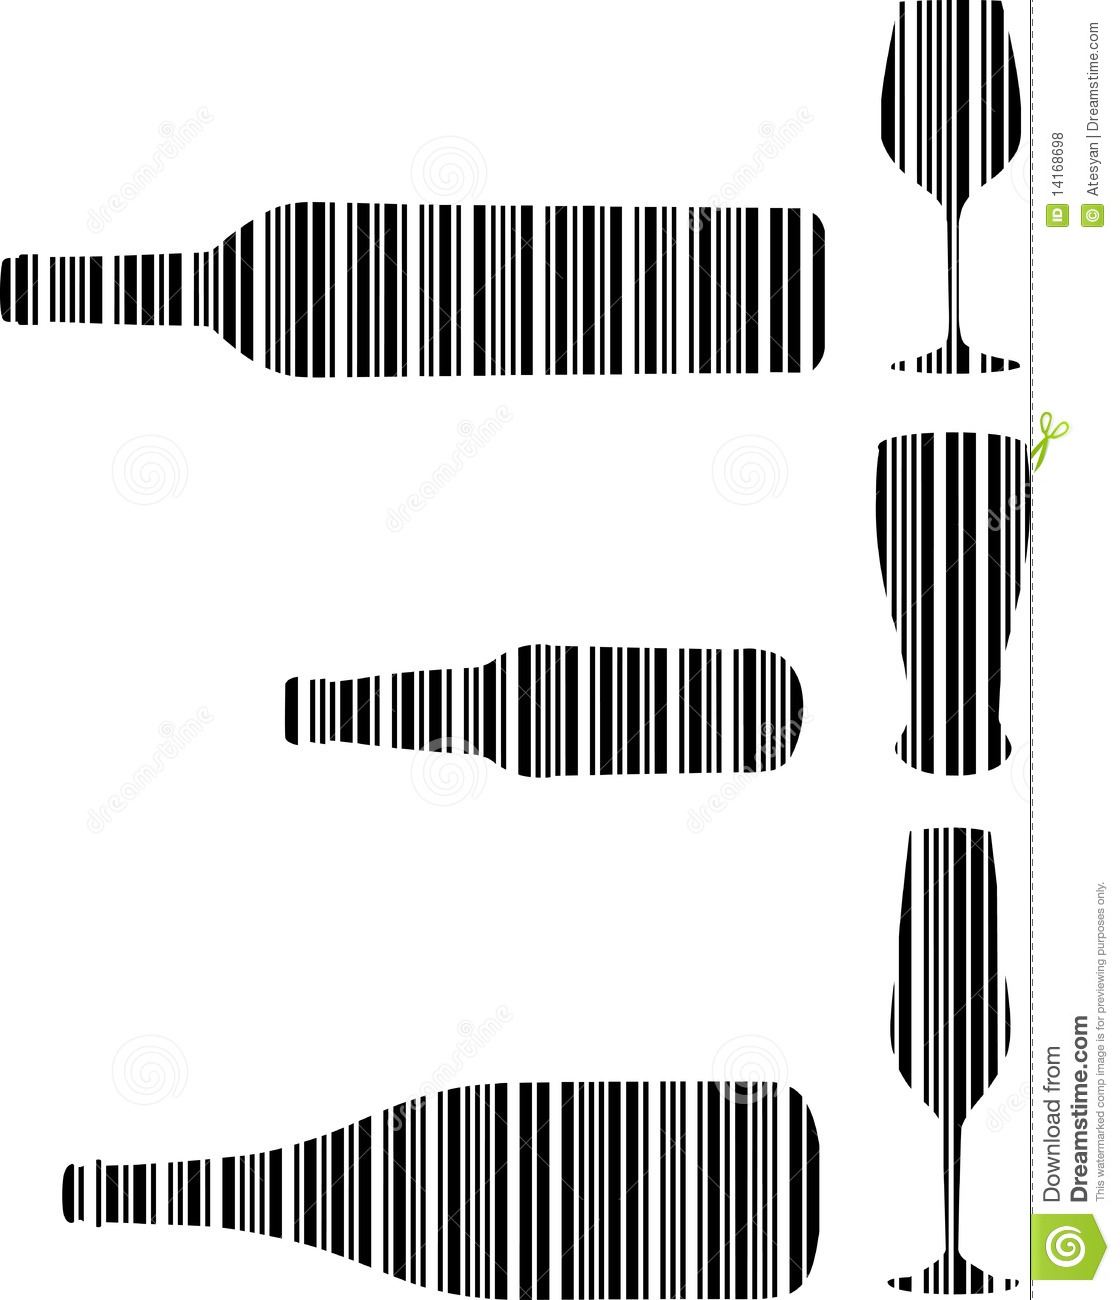 barcode drink bottle and glasses royalty free stock photos